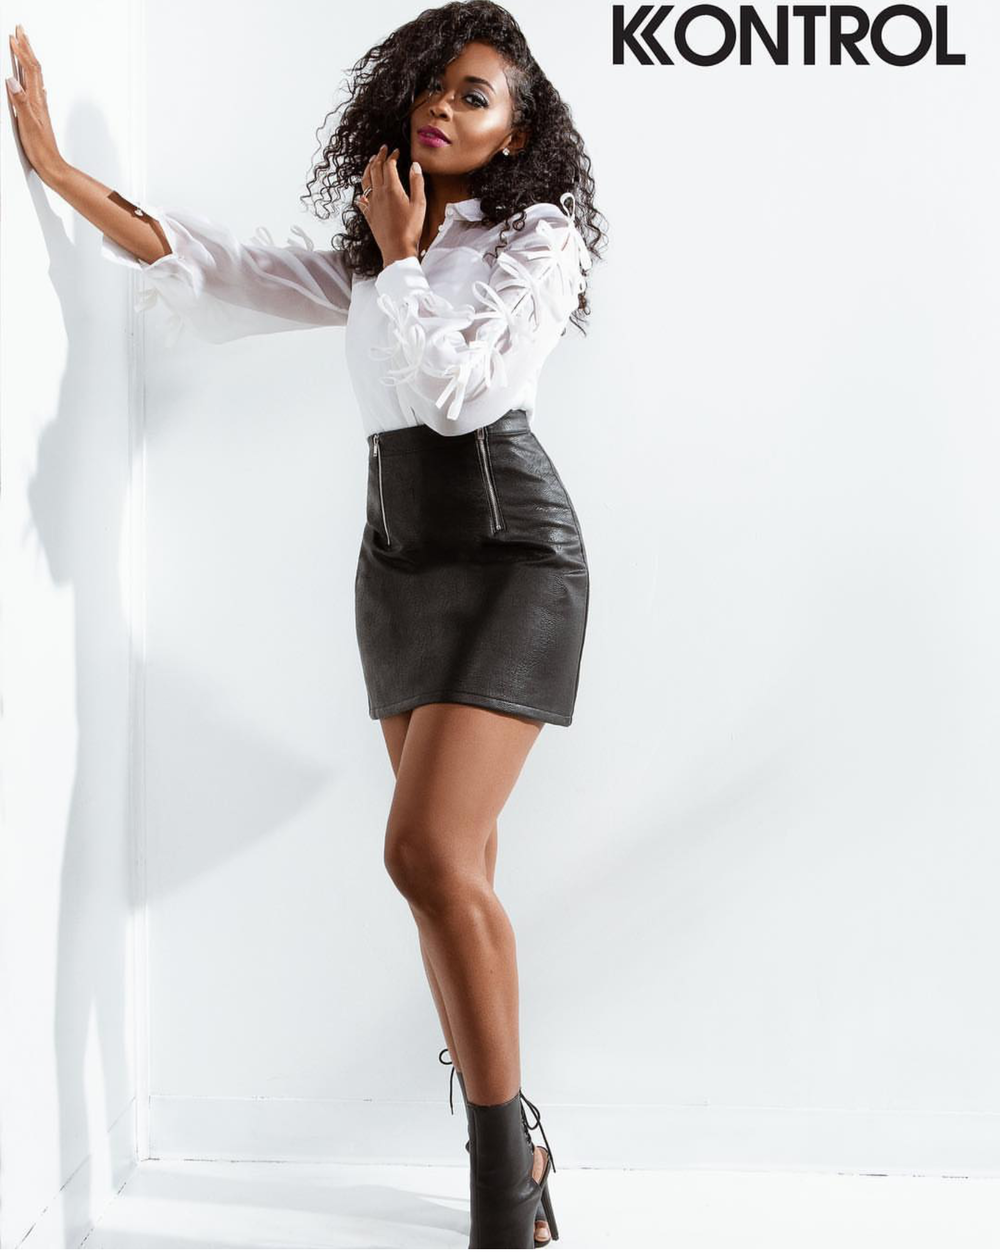 KONTROL MAGAZINE REBIRTH ISSUE 2018 NAFESSA WILLIAMS LEATHER.png